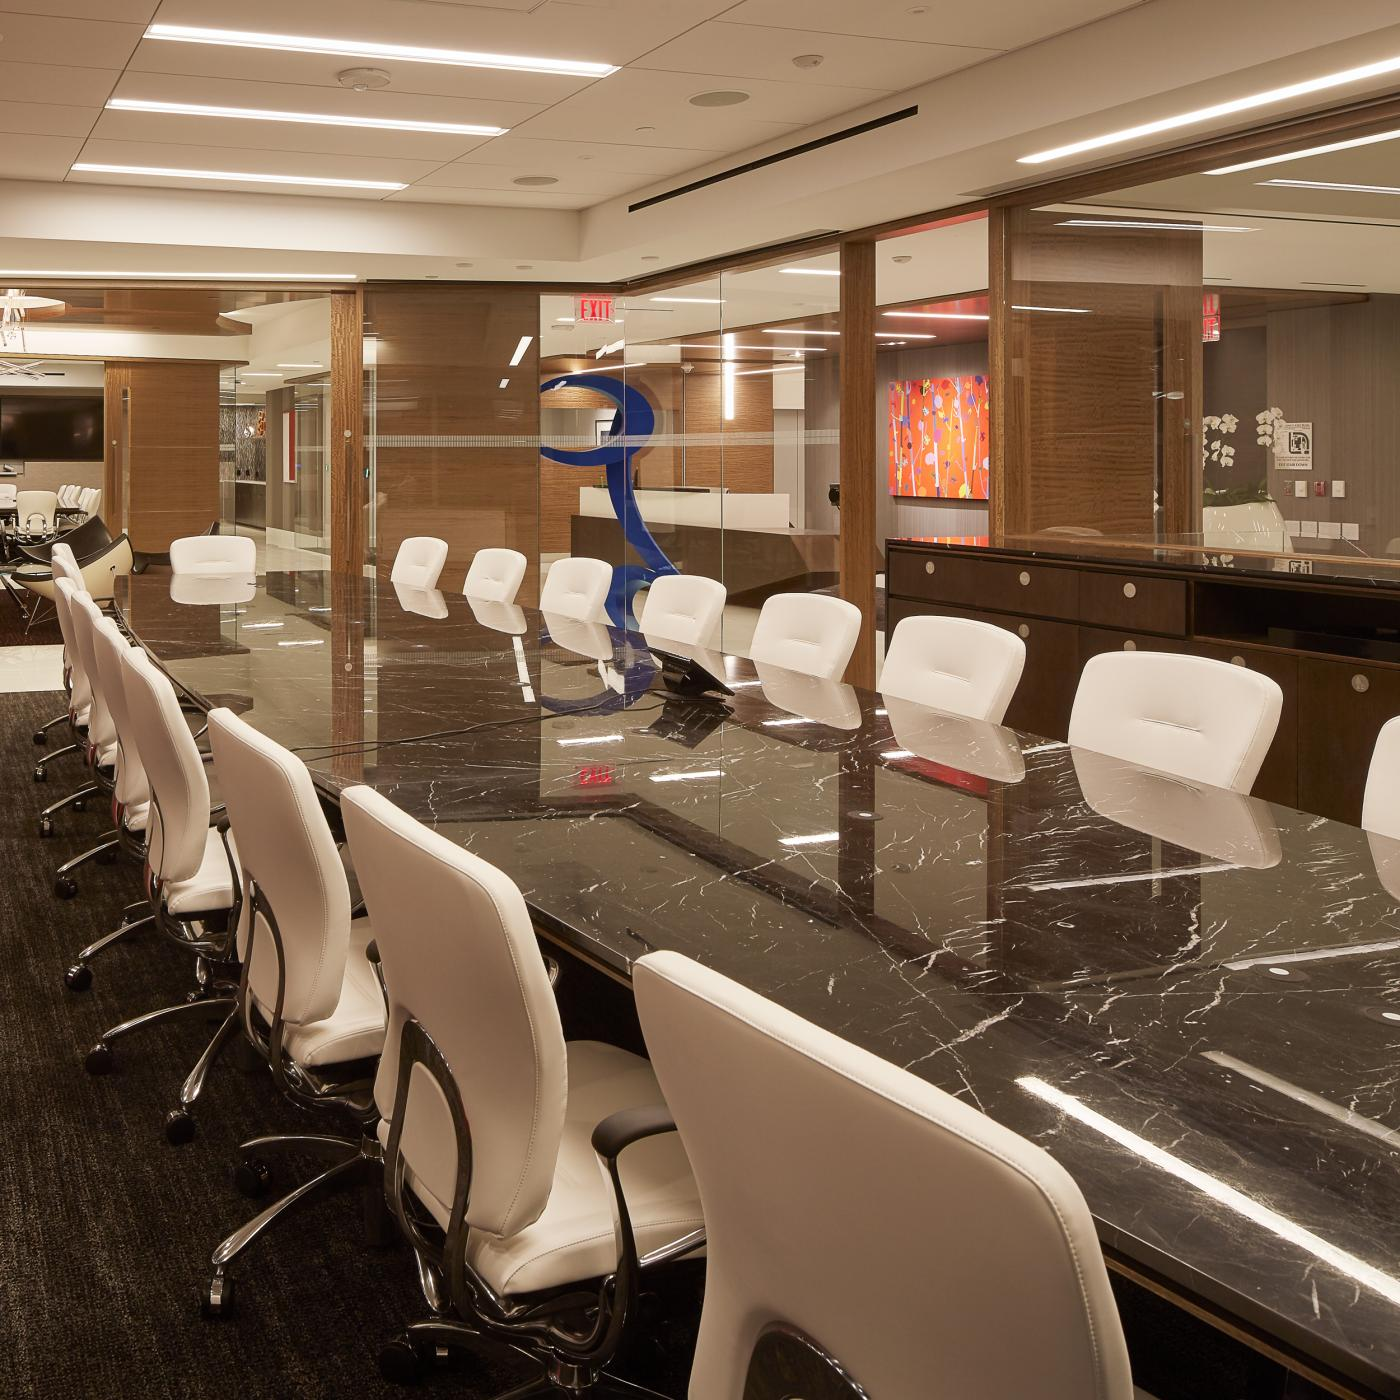 Mesa tables of varied shapes and sizes are utilized throughout the conference space.